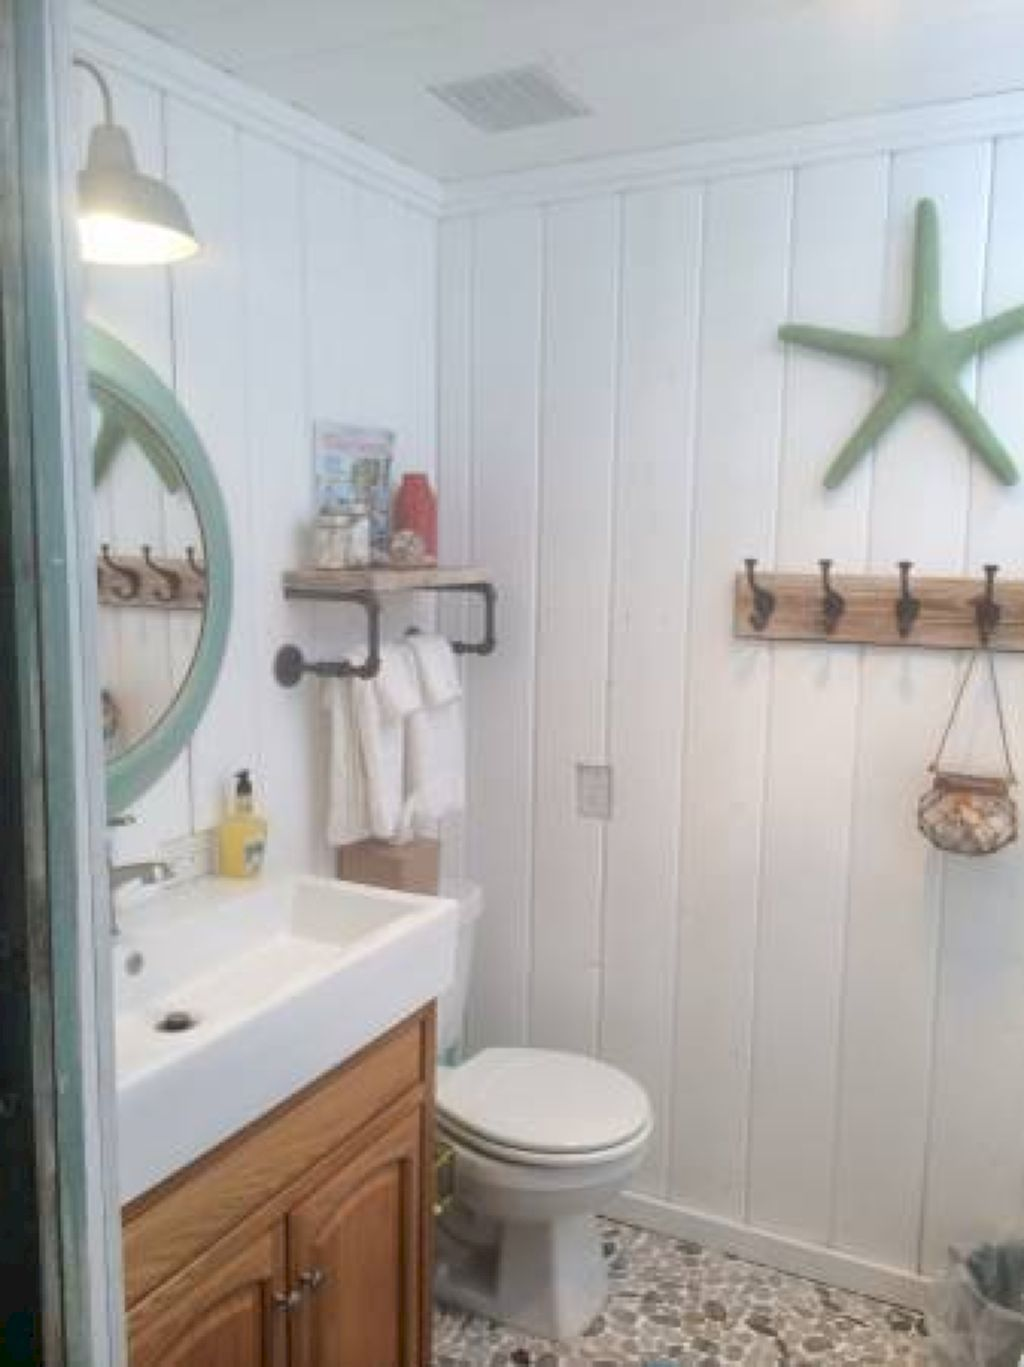 57 Cotage Bathroom Ideas Picture and Decor | Coastal, Cottage ideas ...